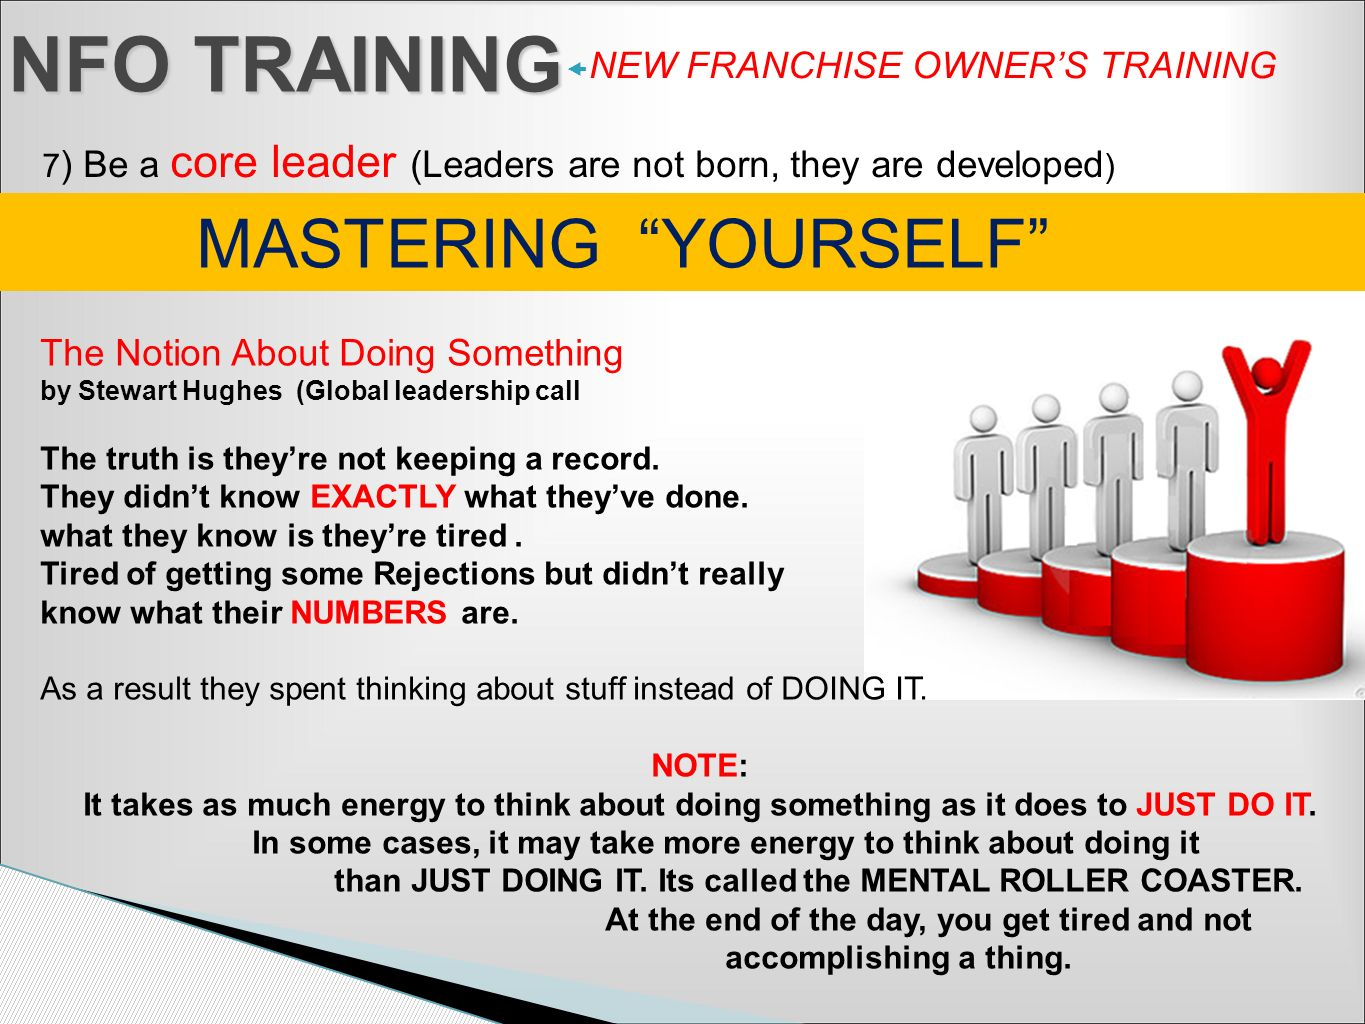 NFO TRAINING NEW FRANCHISE OWNERS TRAINING 7 ) Be a core leader (Leaders are not born, they are developed ) MASTERING YOURSELF The Notion About Doing